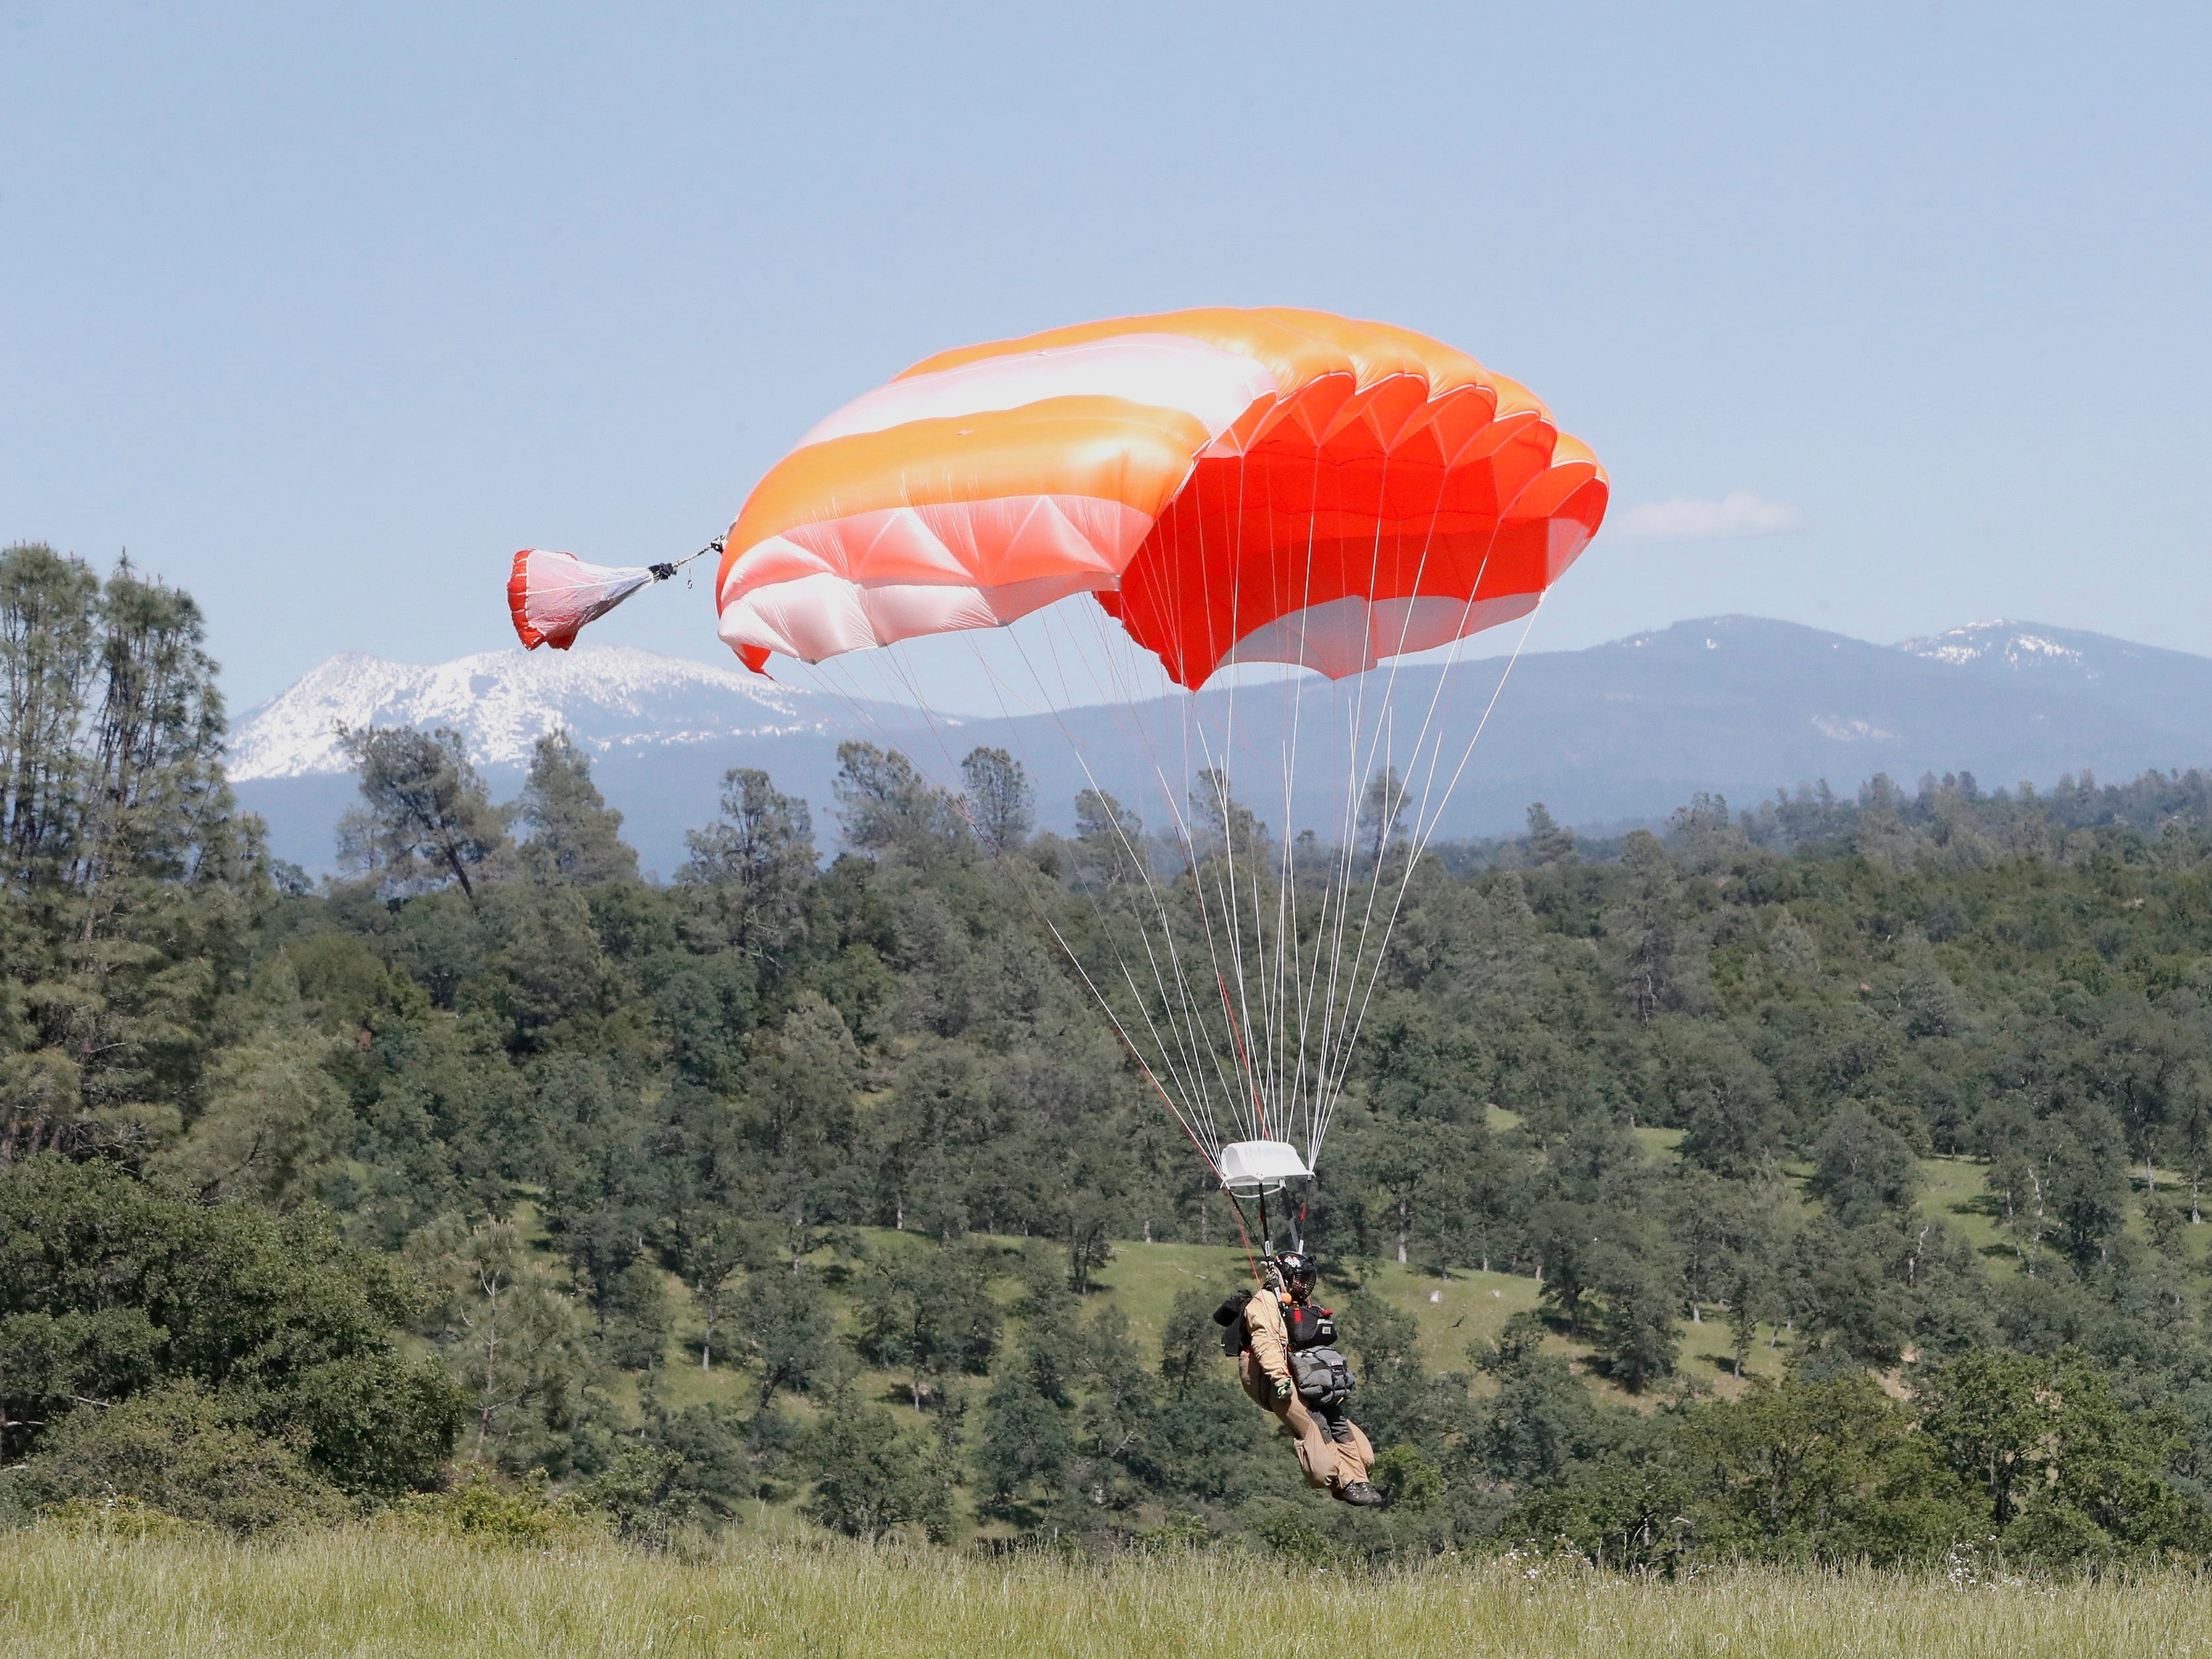 A smokejumper descends to earth during aerial firefighting training with Lassen Peak in the background.